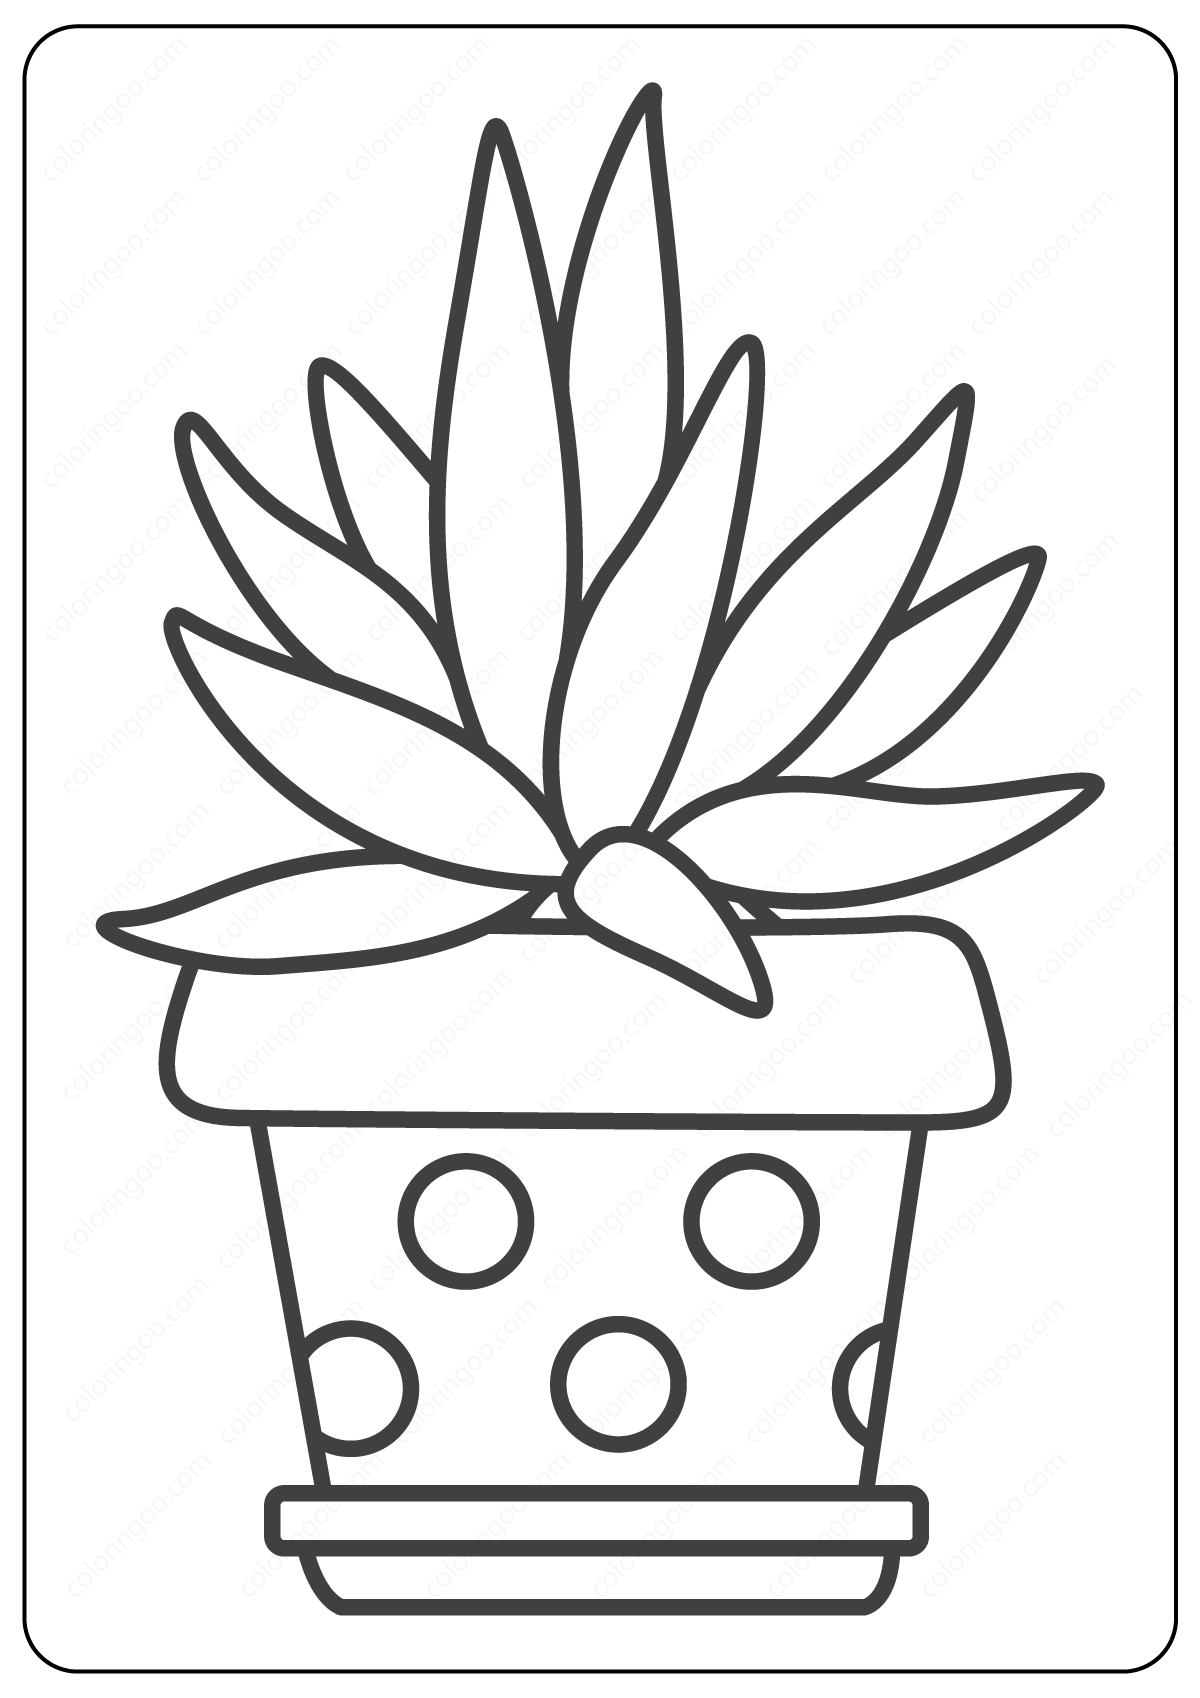 cactus printable coloring sheets flowering cactus plants coloring page download free sheets printable coloring cactus